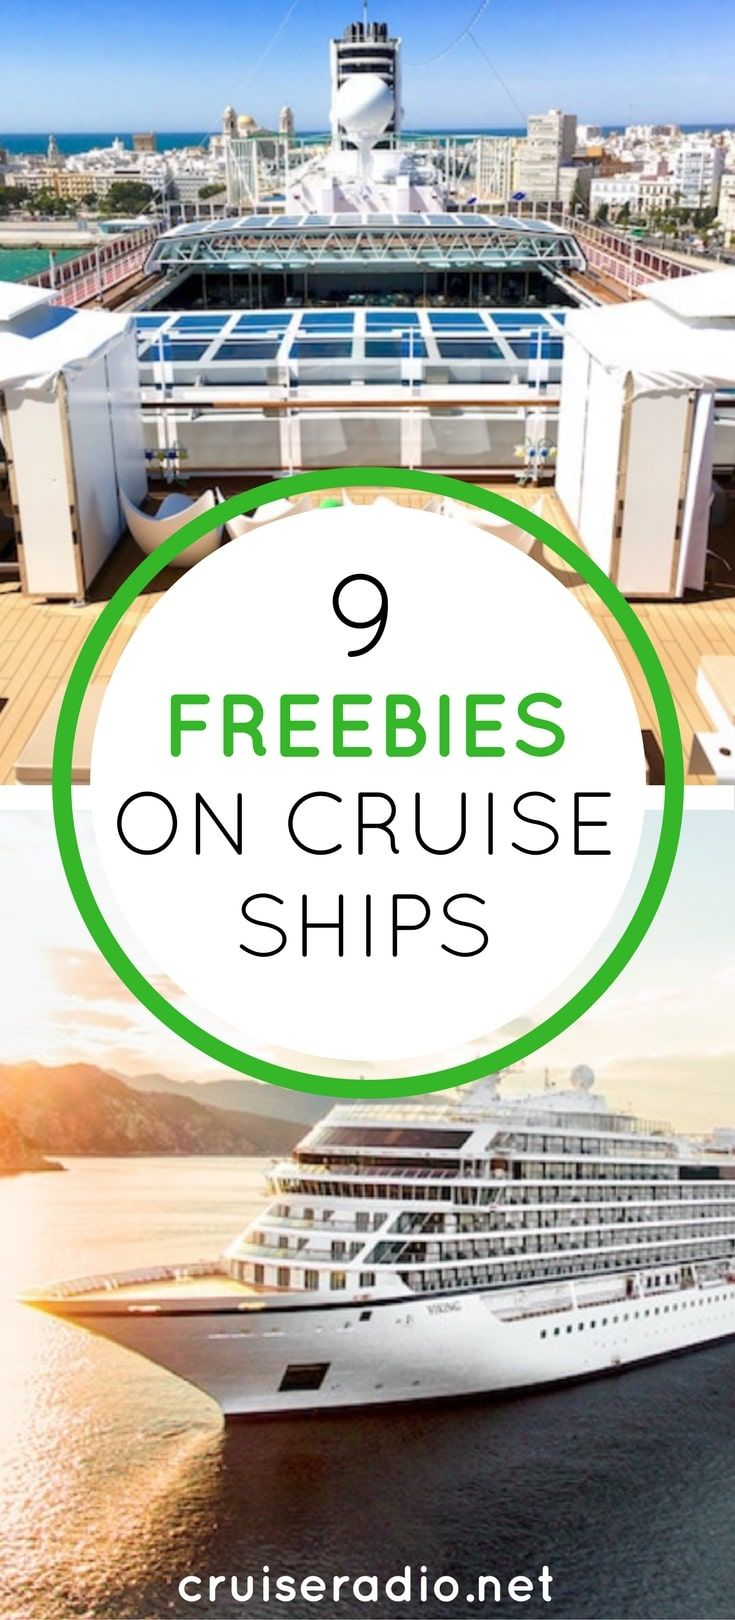 Subscribe to Cruise Radio News by Email It's no doubt in this economy we are pinching pennies now more than ever… yes, even on vacation. A common misconception when you take a cruise is that everything costs extra money. Wrong! Here area few ways to get free stuff on cruise ships. Chec…